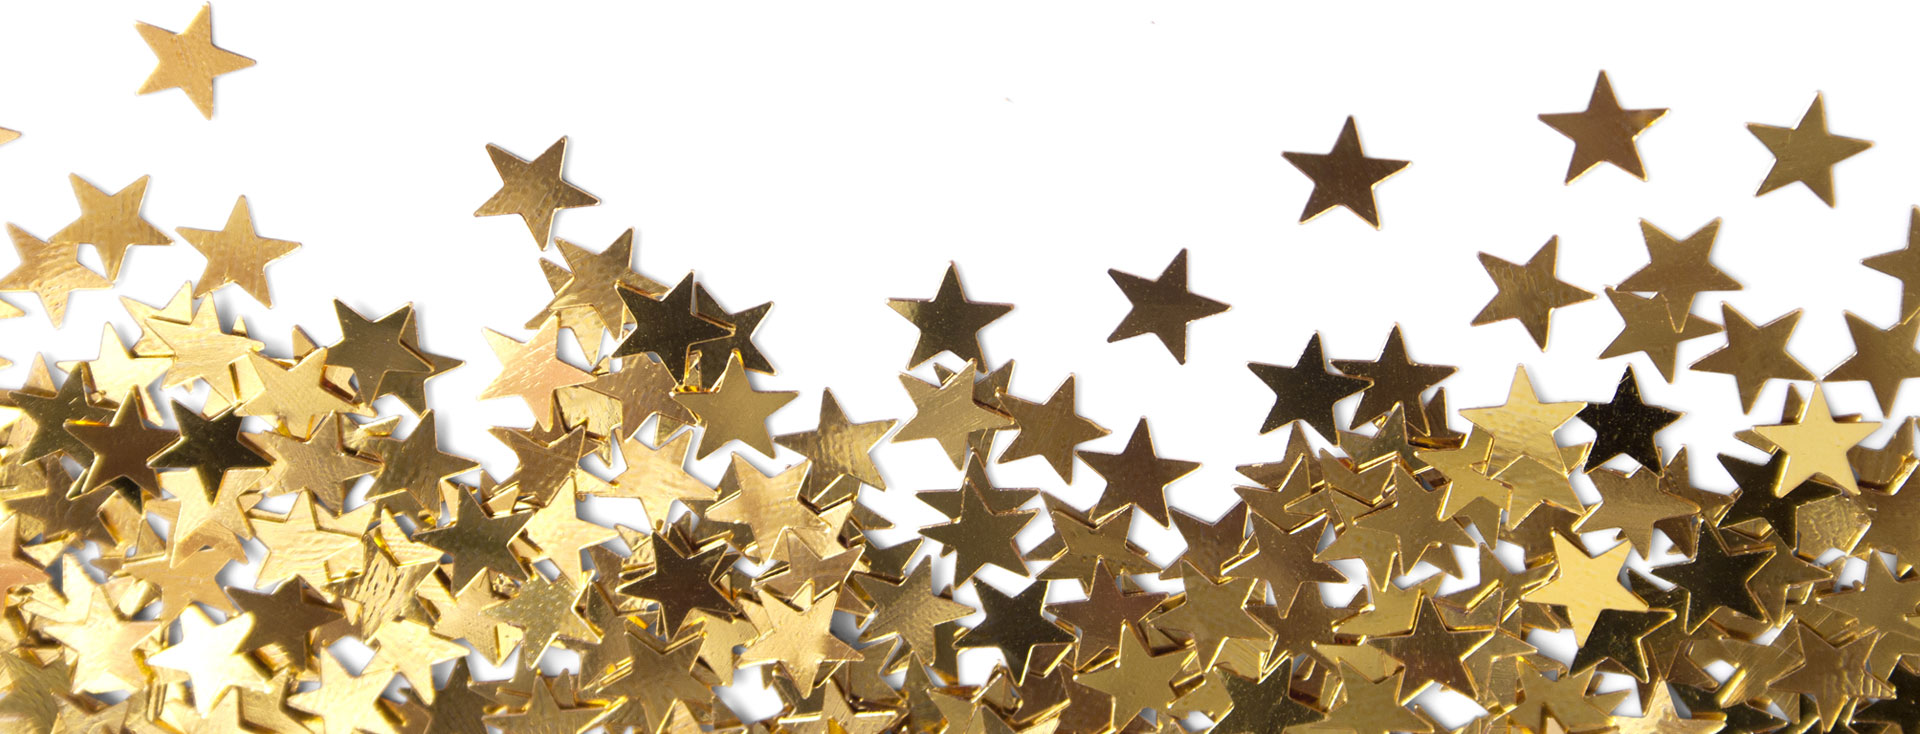 Funds2Orgs gets a gold star from our shoe drive fundraising partners -- here's why